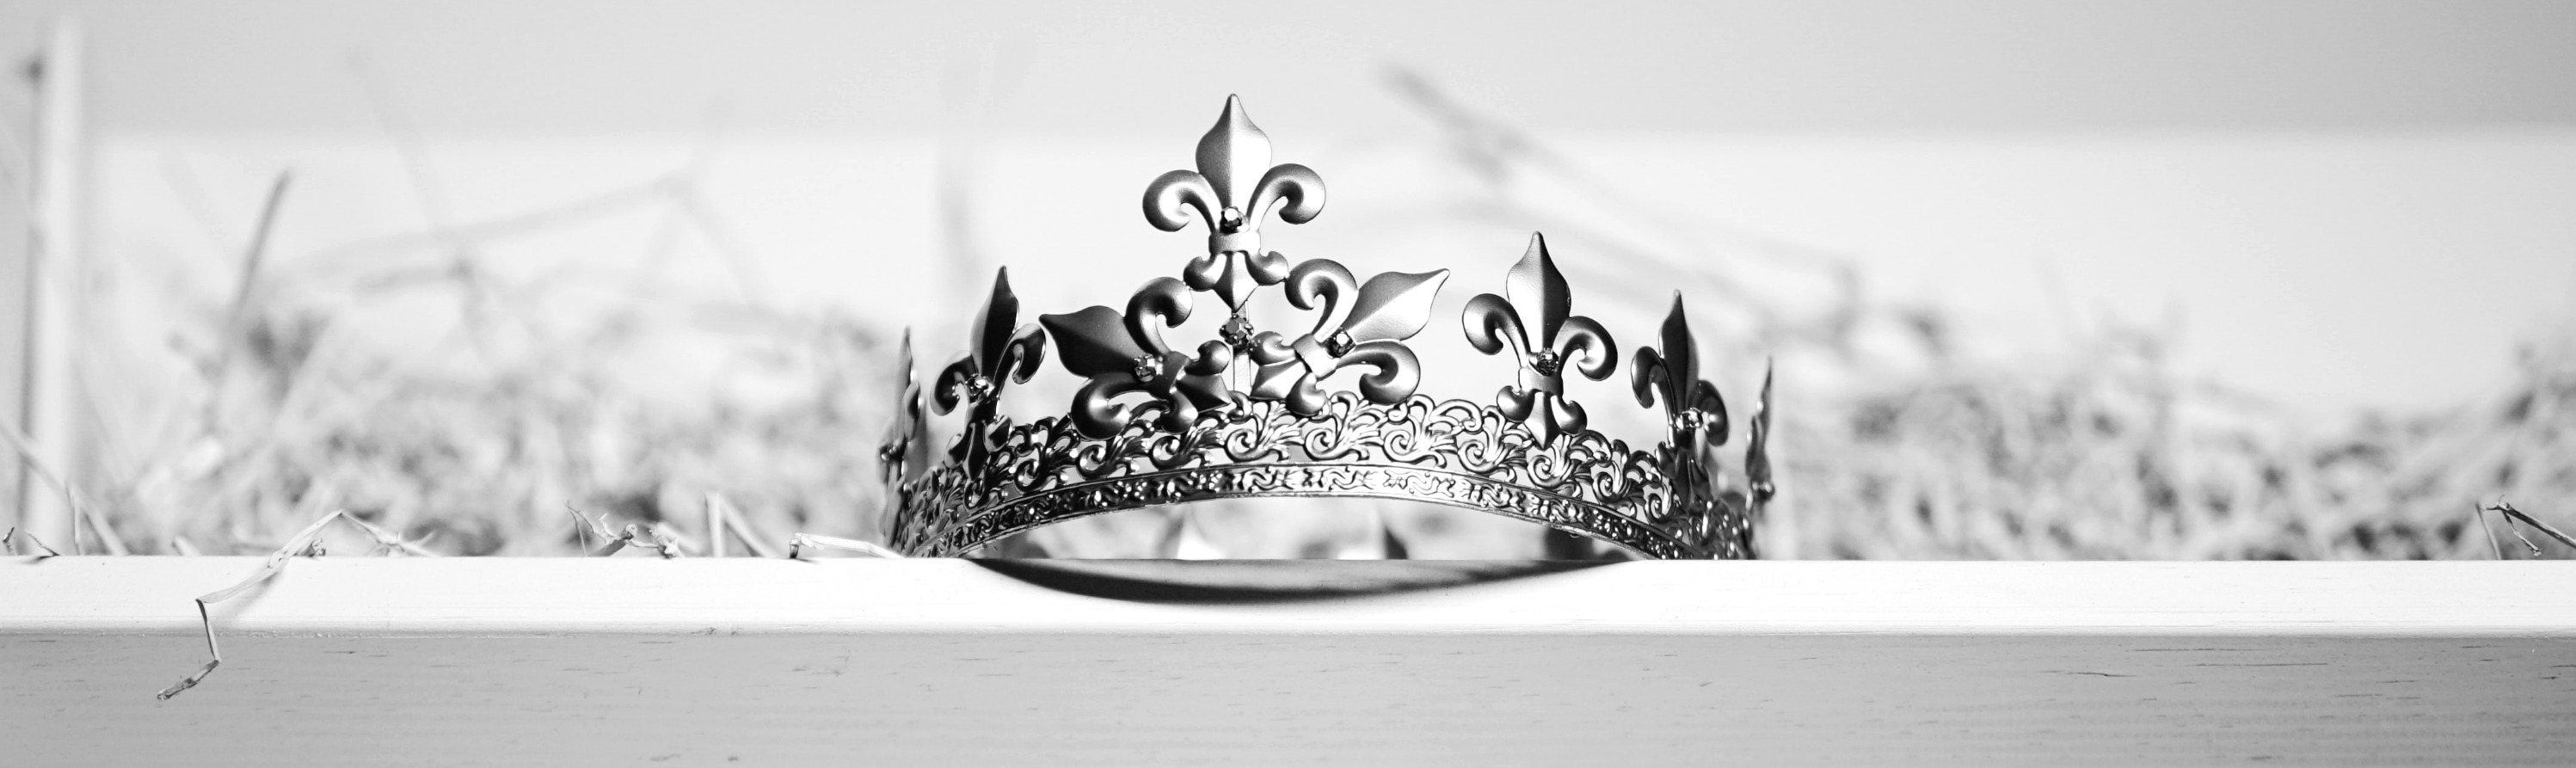 We Receive the Crown of Life